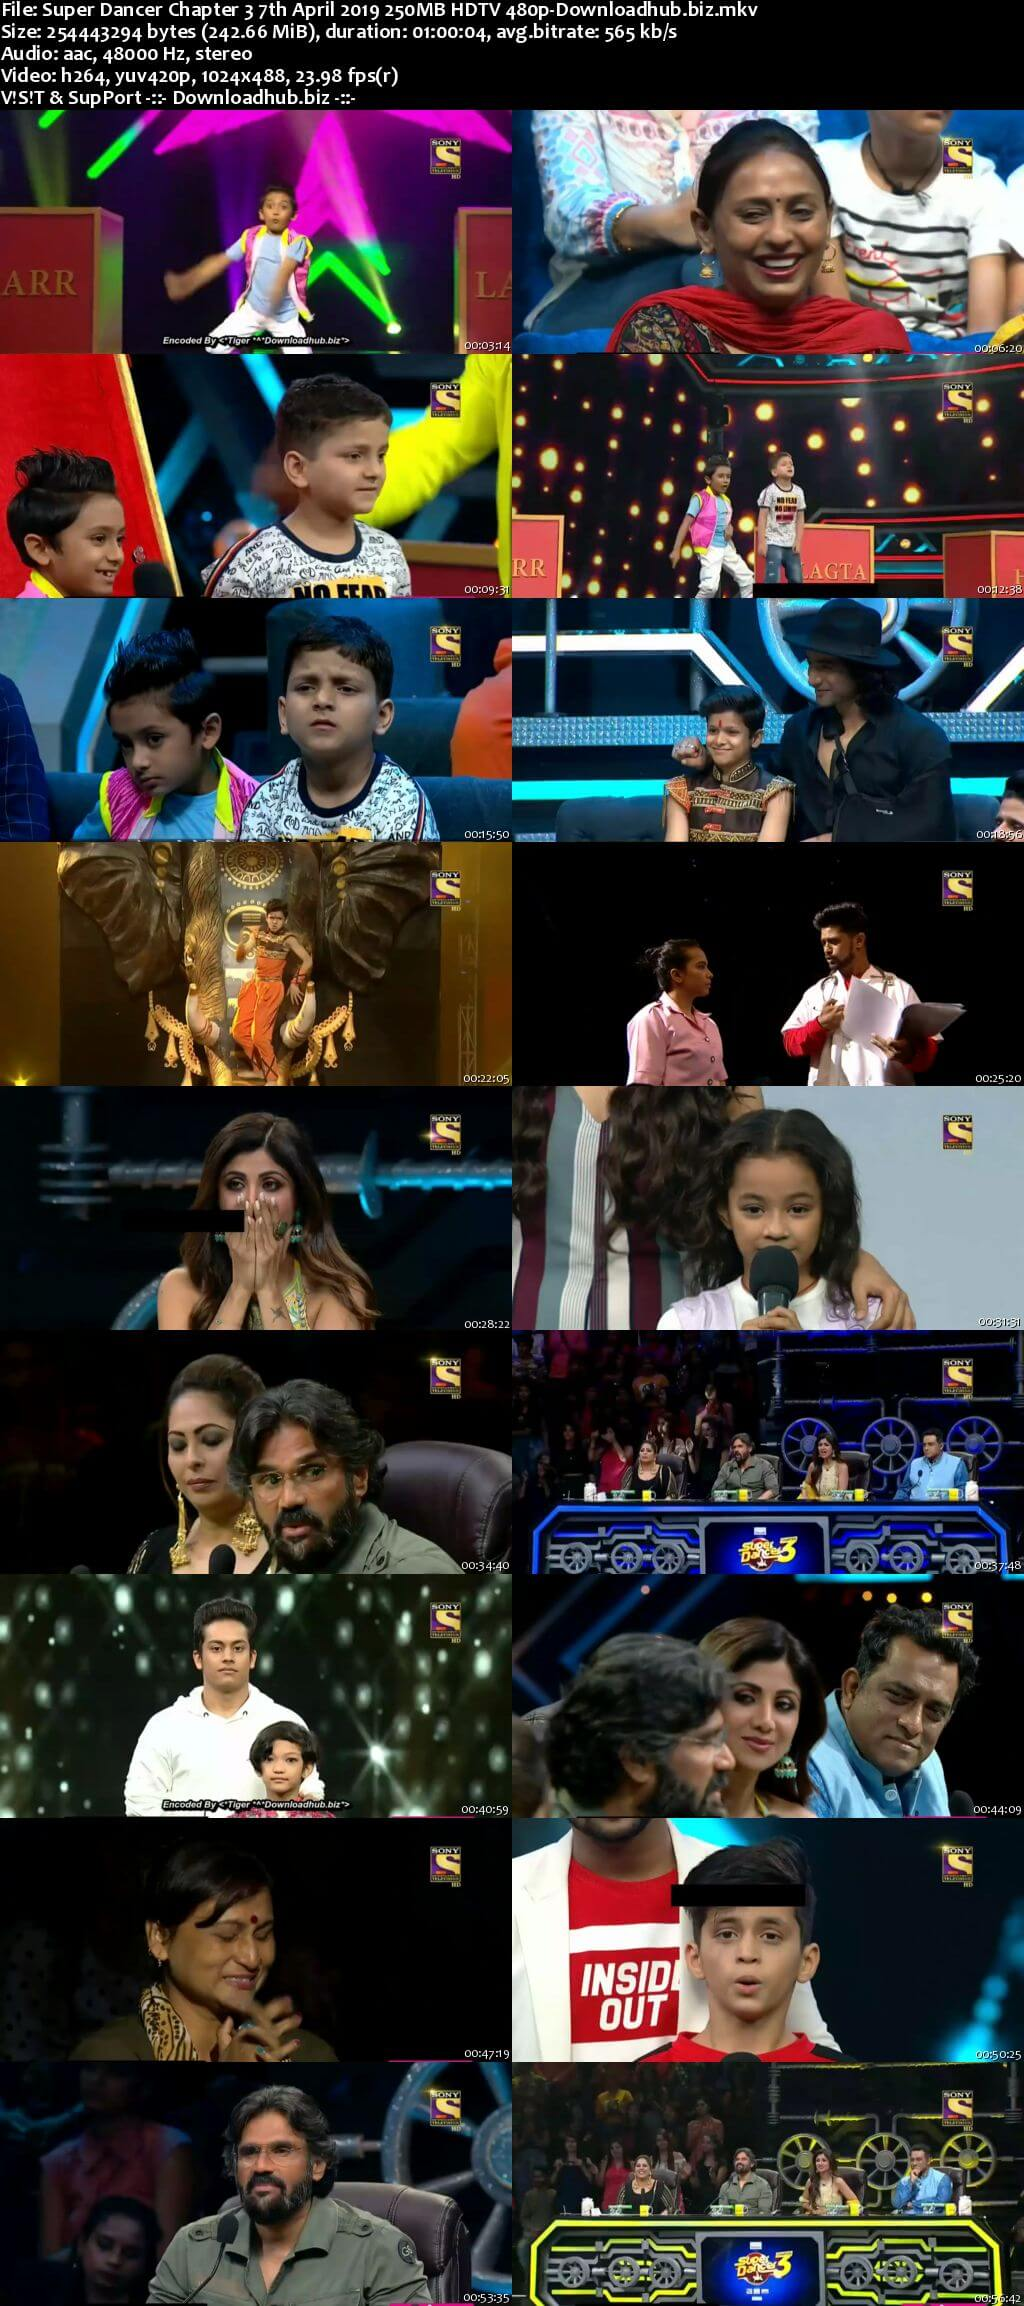 Super Dancer Chapter 3 07 April 2019 Episode 30 HDTV 480p